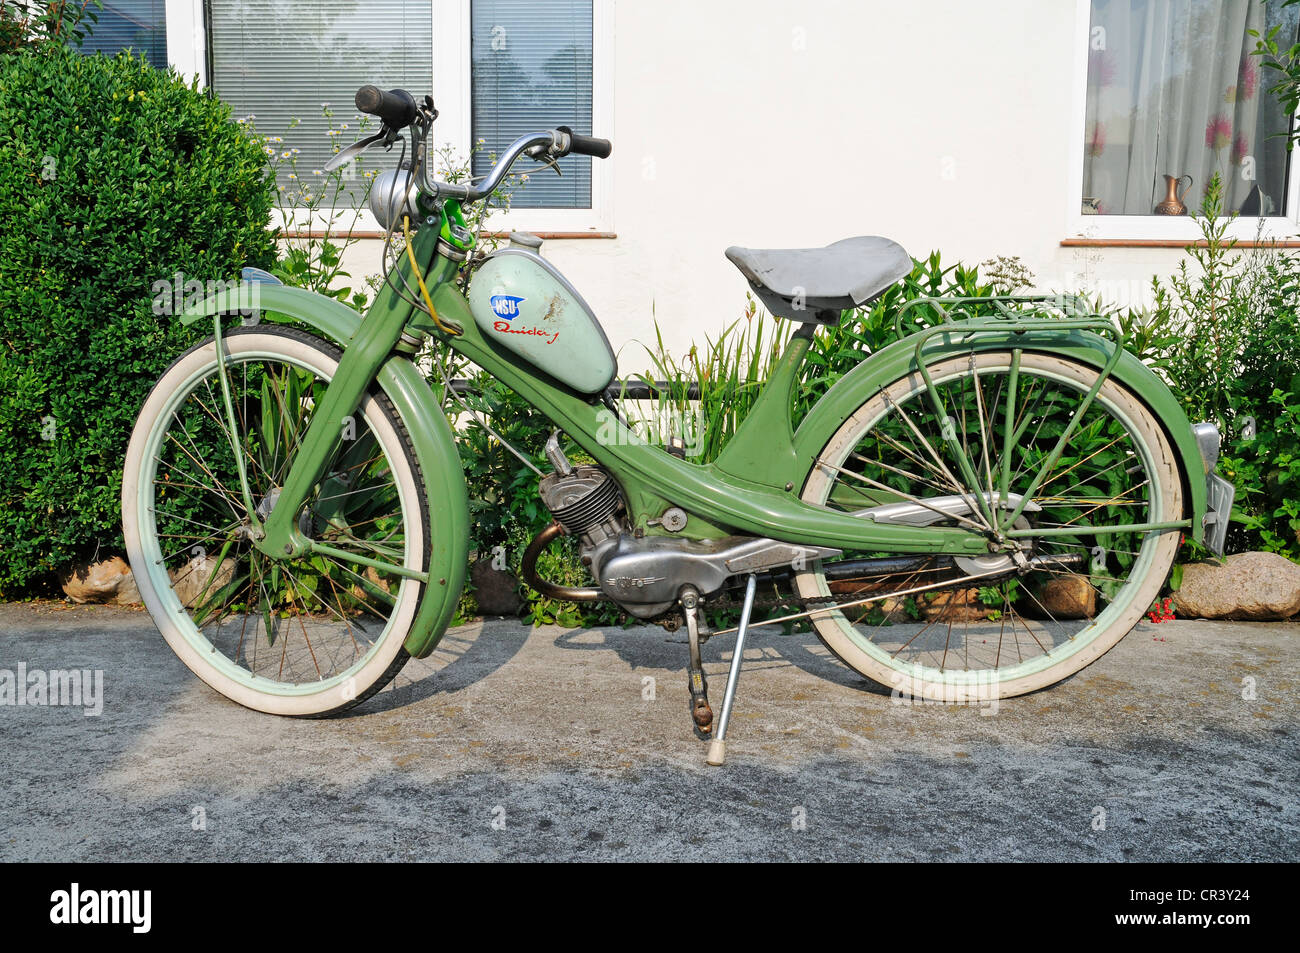 NSU Quickly moped, historic motor-assisted pedal cycle